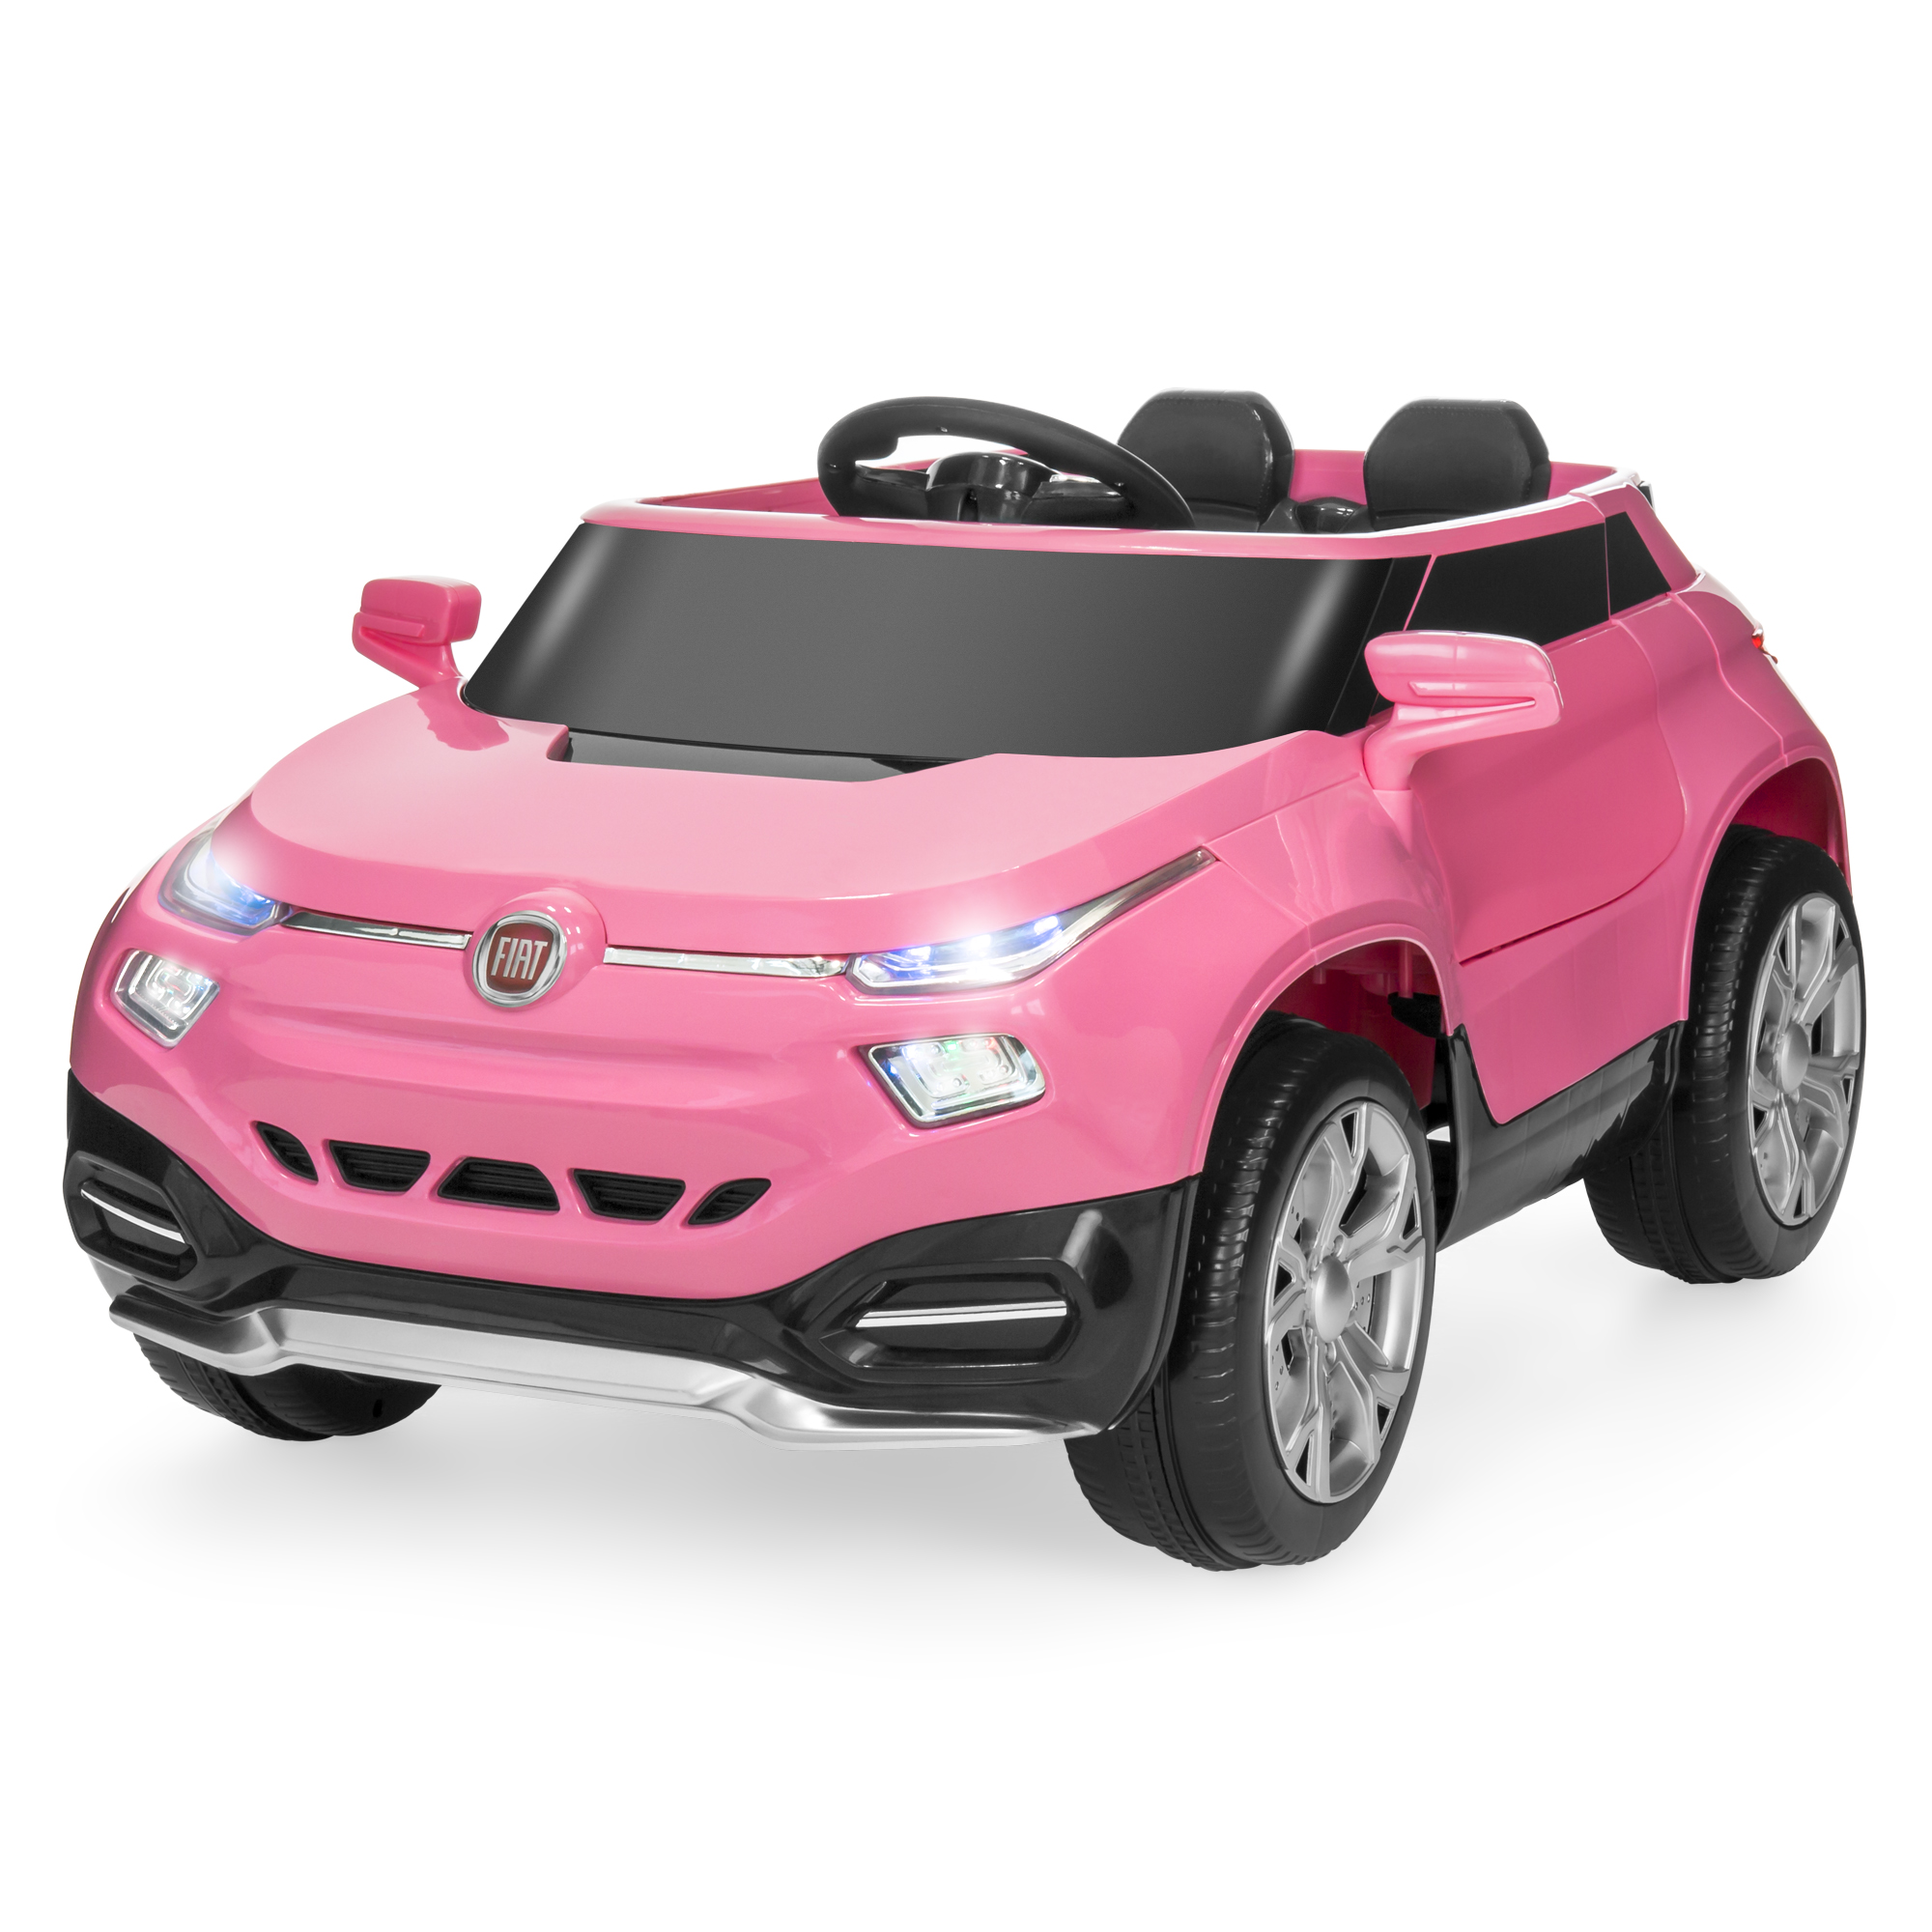 Best Choice Products Kids 12V Licensed Fiat Ride On Car SUV w/ Suspension, Surround Sound Speaker, LED Lights - Pink